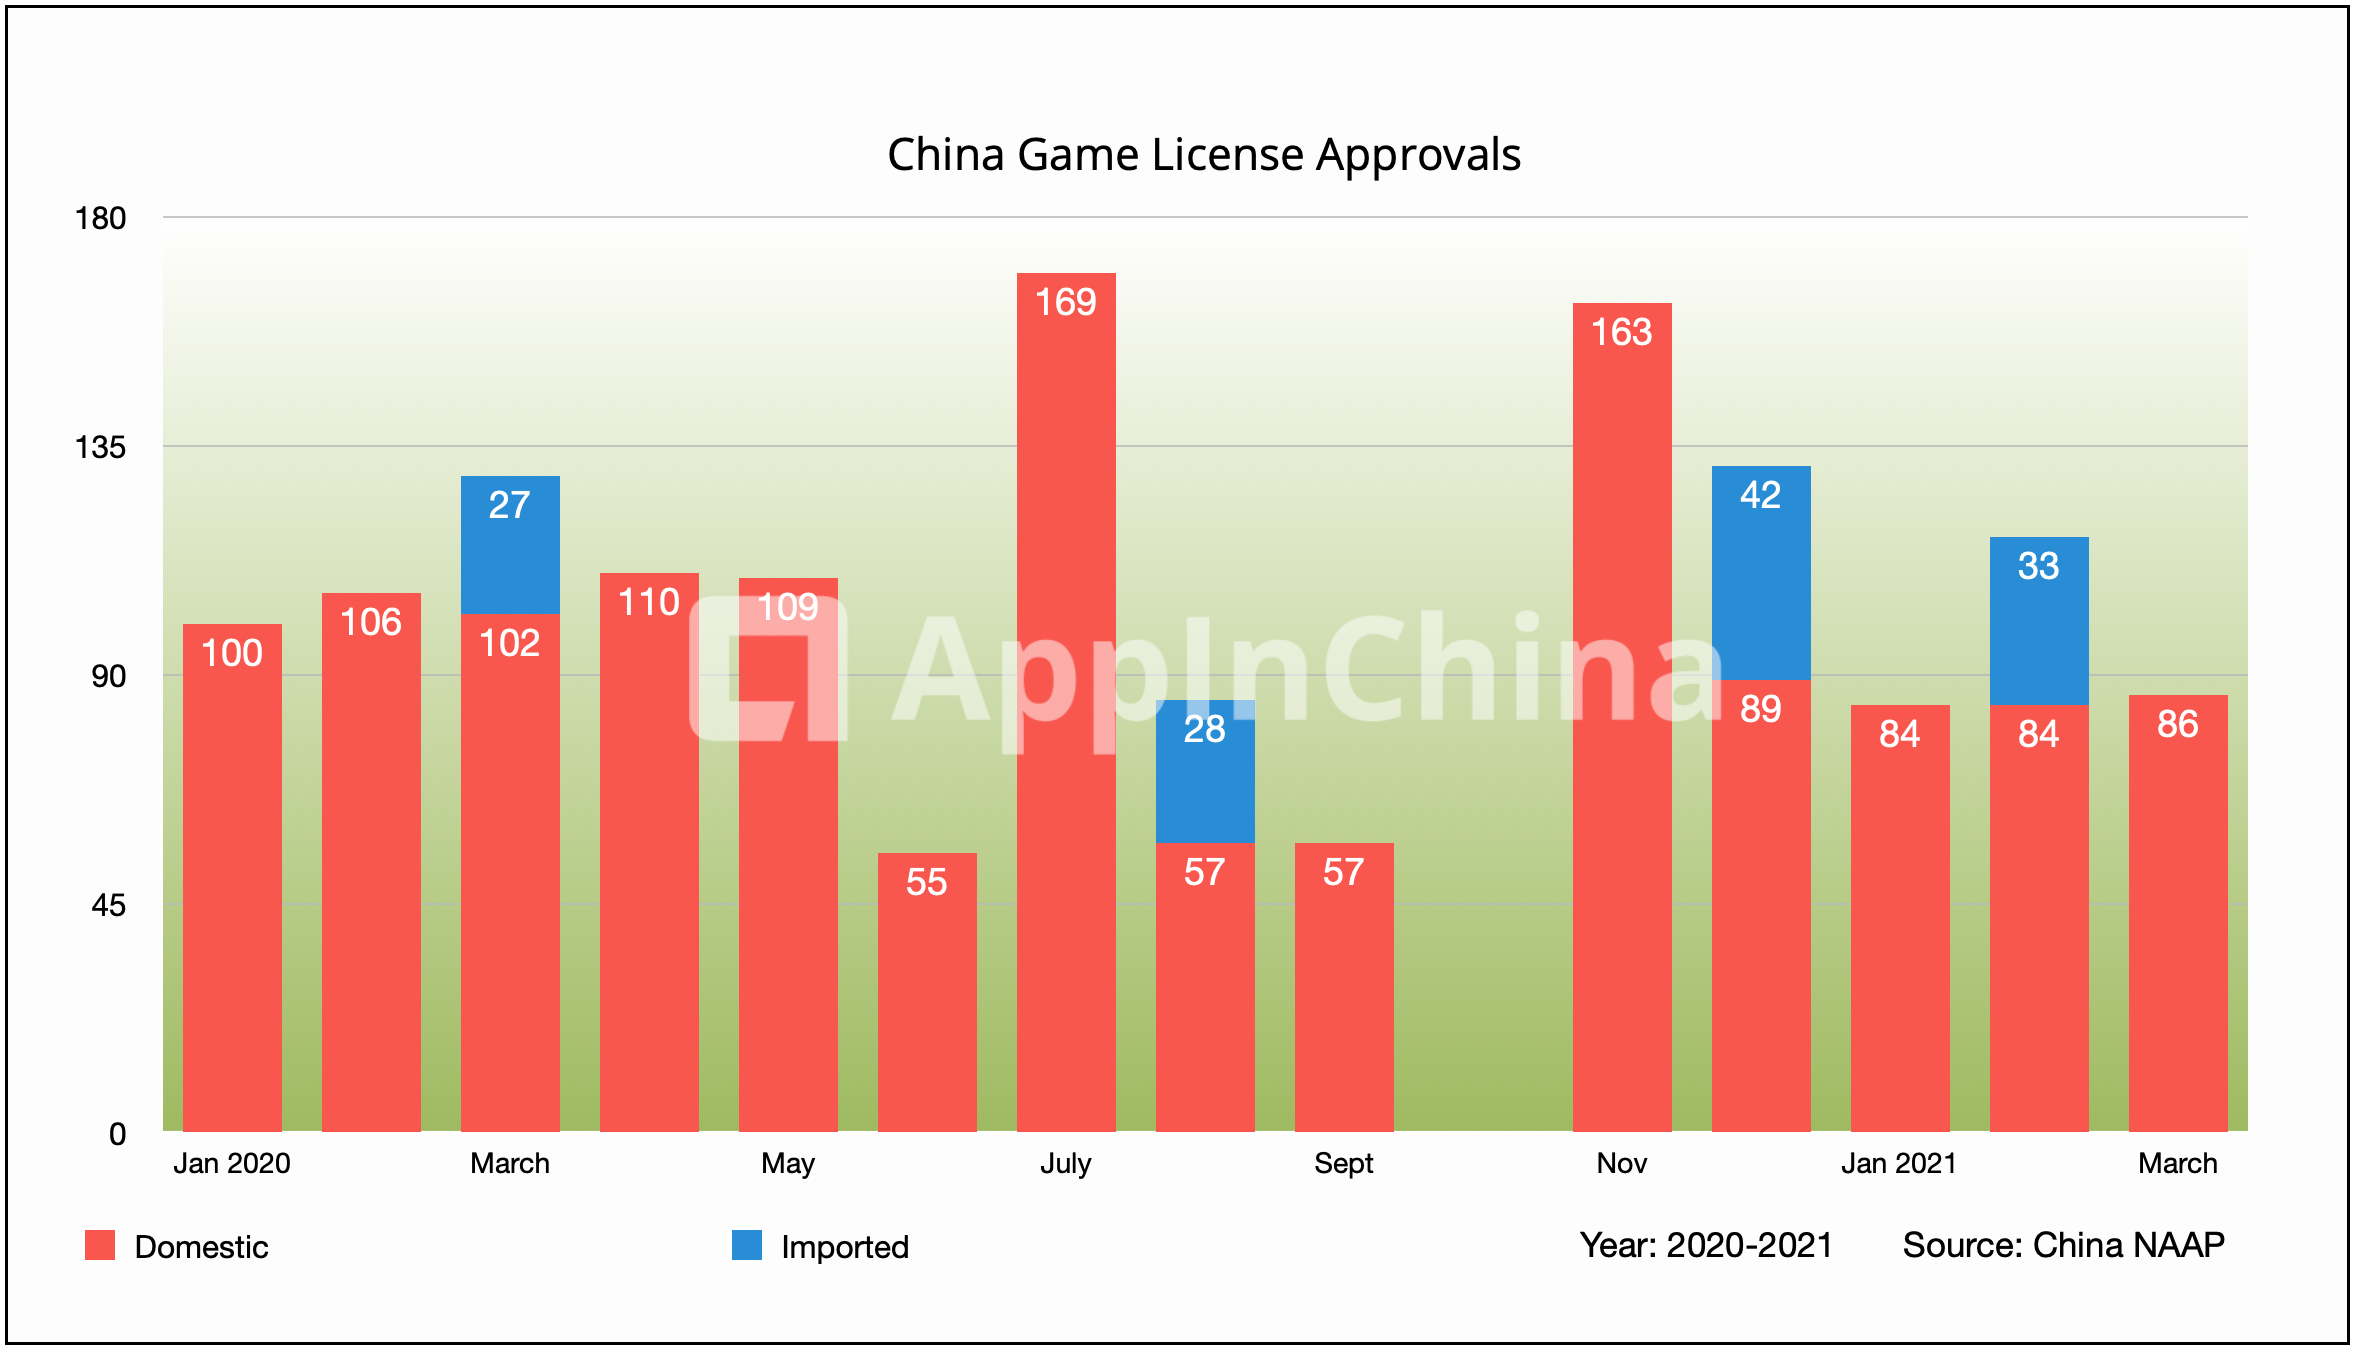 Update on game license approvals in China - Q1 2021